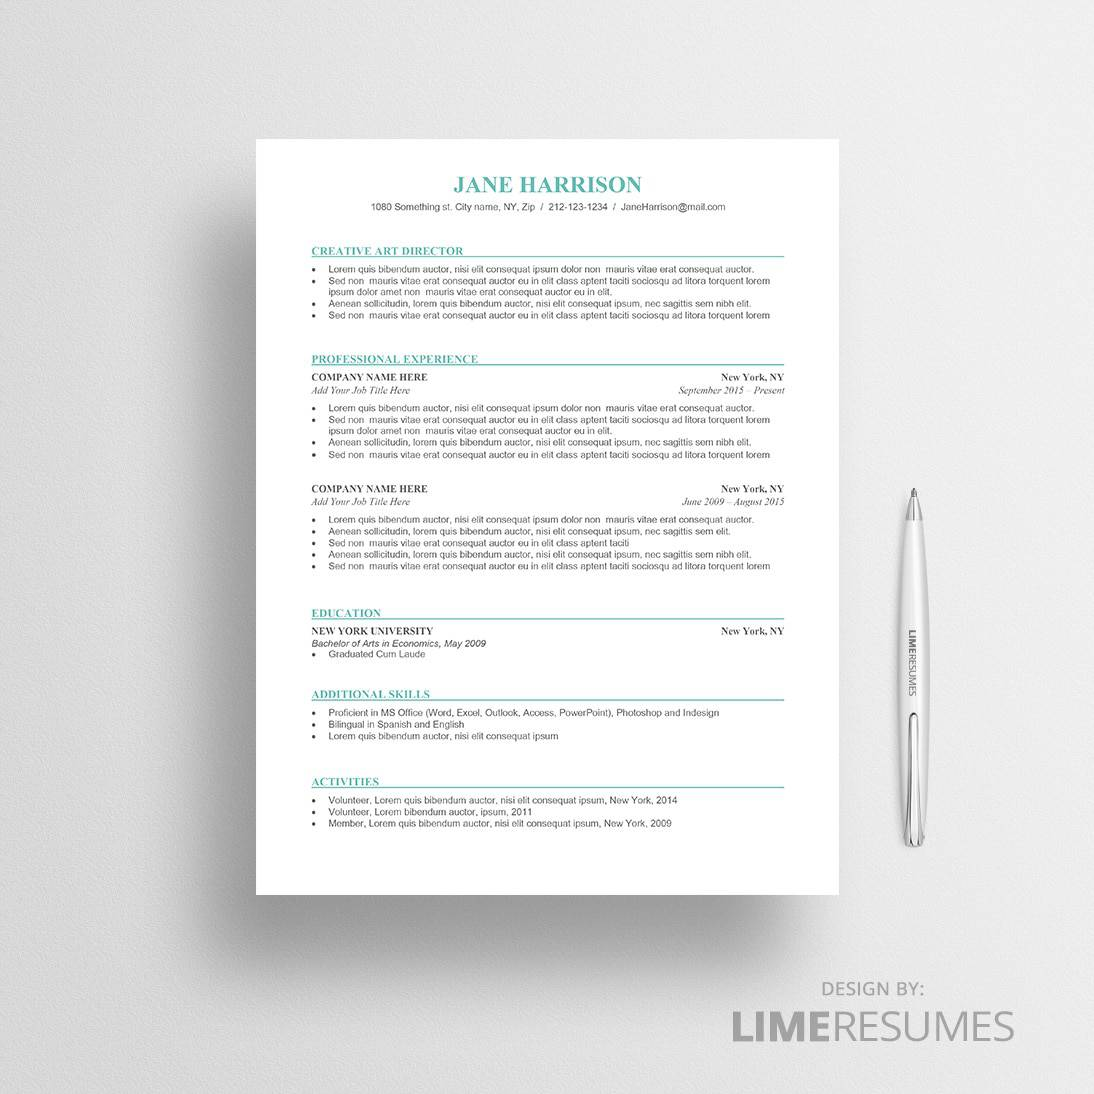 Template Of A Resume Resume Template Ats02